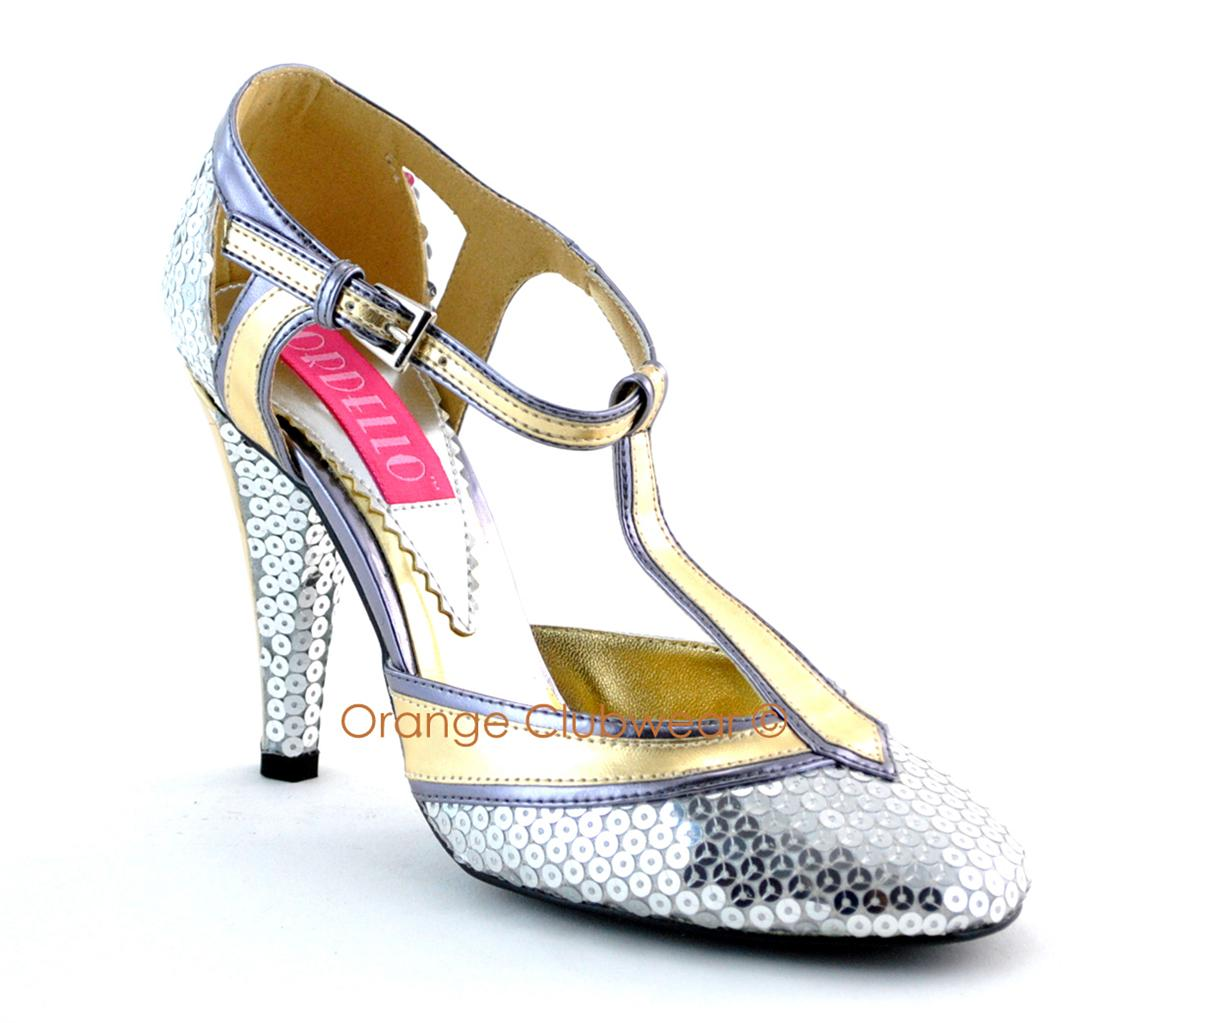 bordello sequin cabaret retro flapper high heels shoes ebay